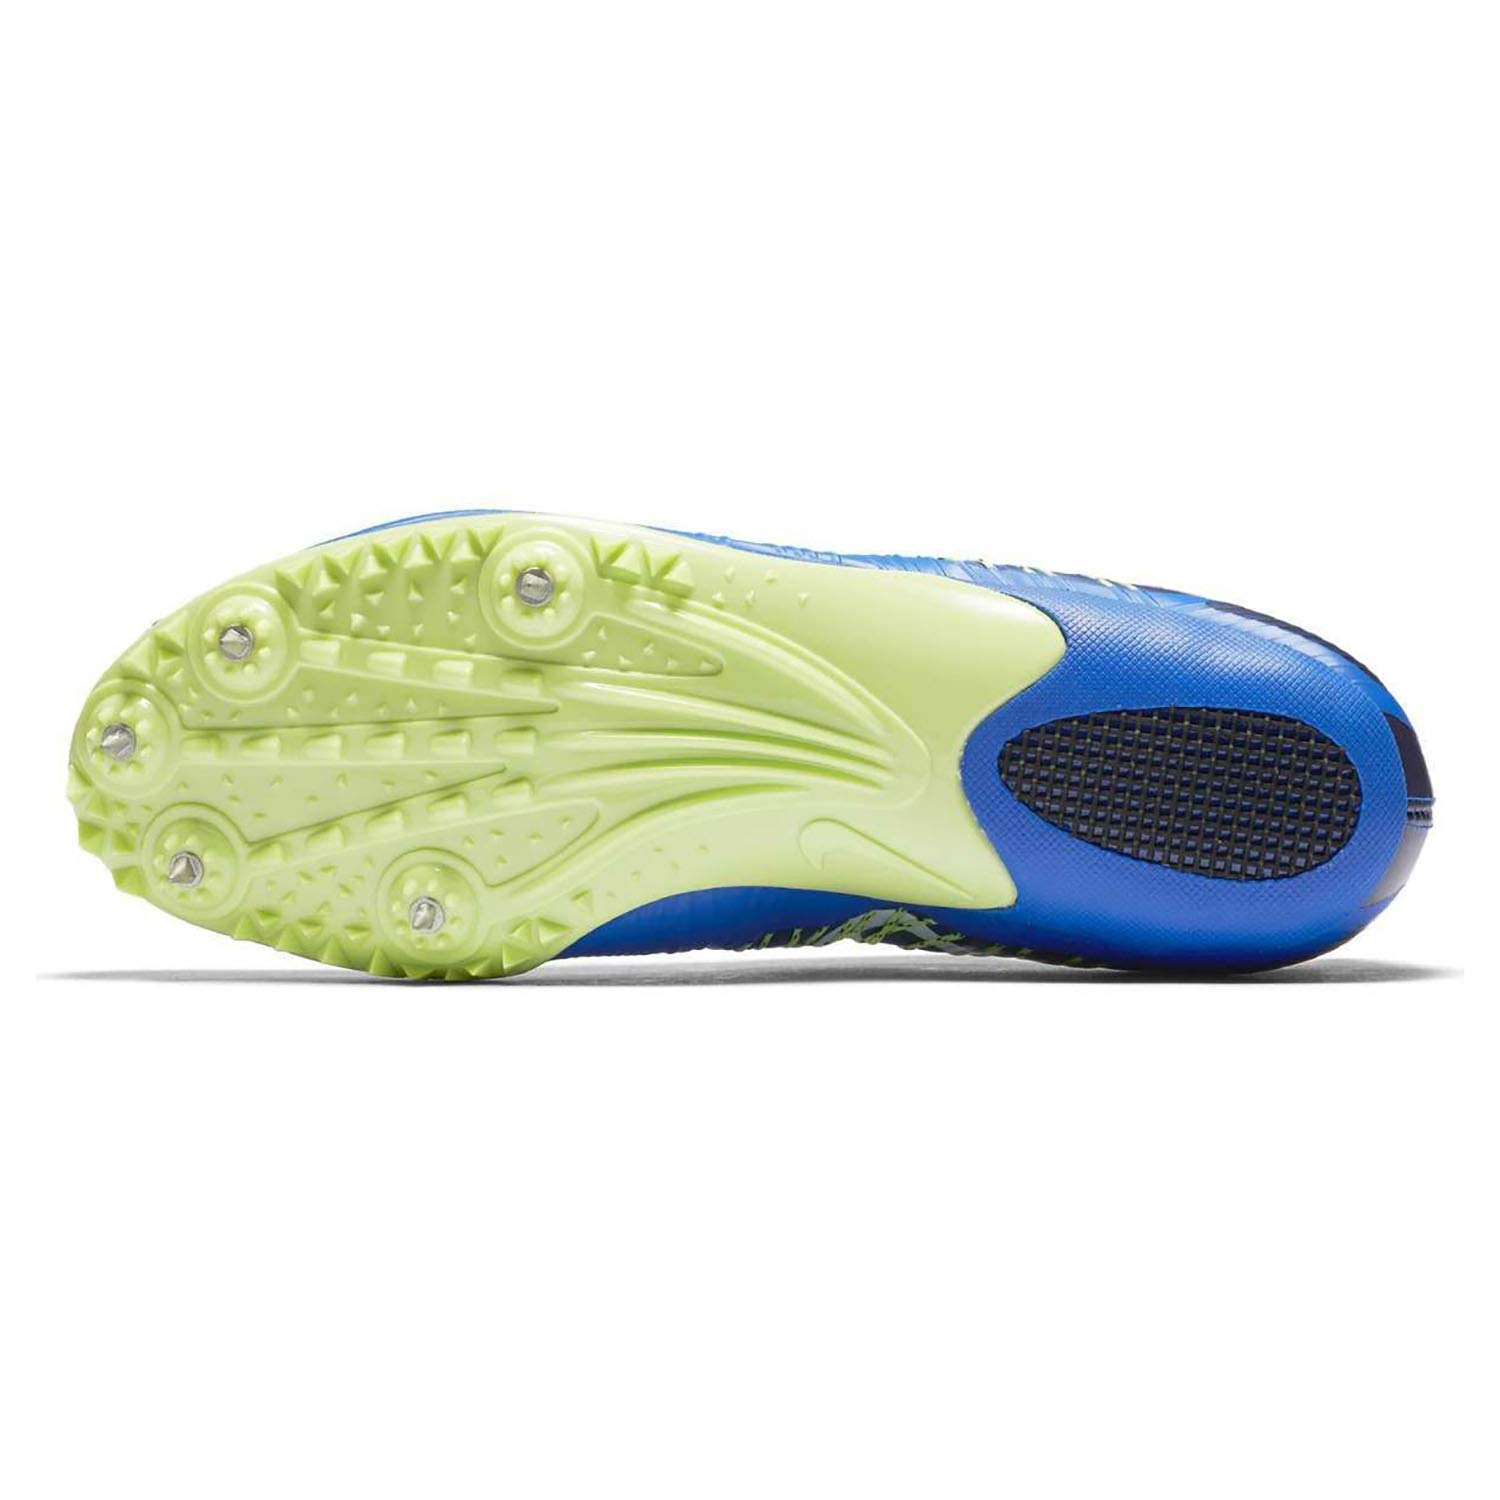 on sale 887d8 b02a7 Amazon.com   Nike Zoom Celar Sprint Track Spikes Shoes Mens Size 11 (Blue,  Volt, White, Black)   Track   Field   Cross Country